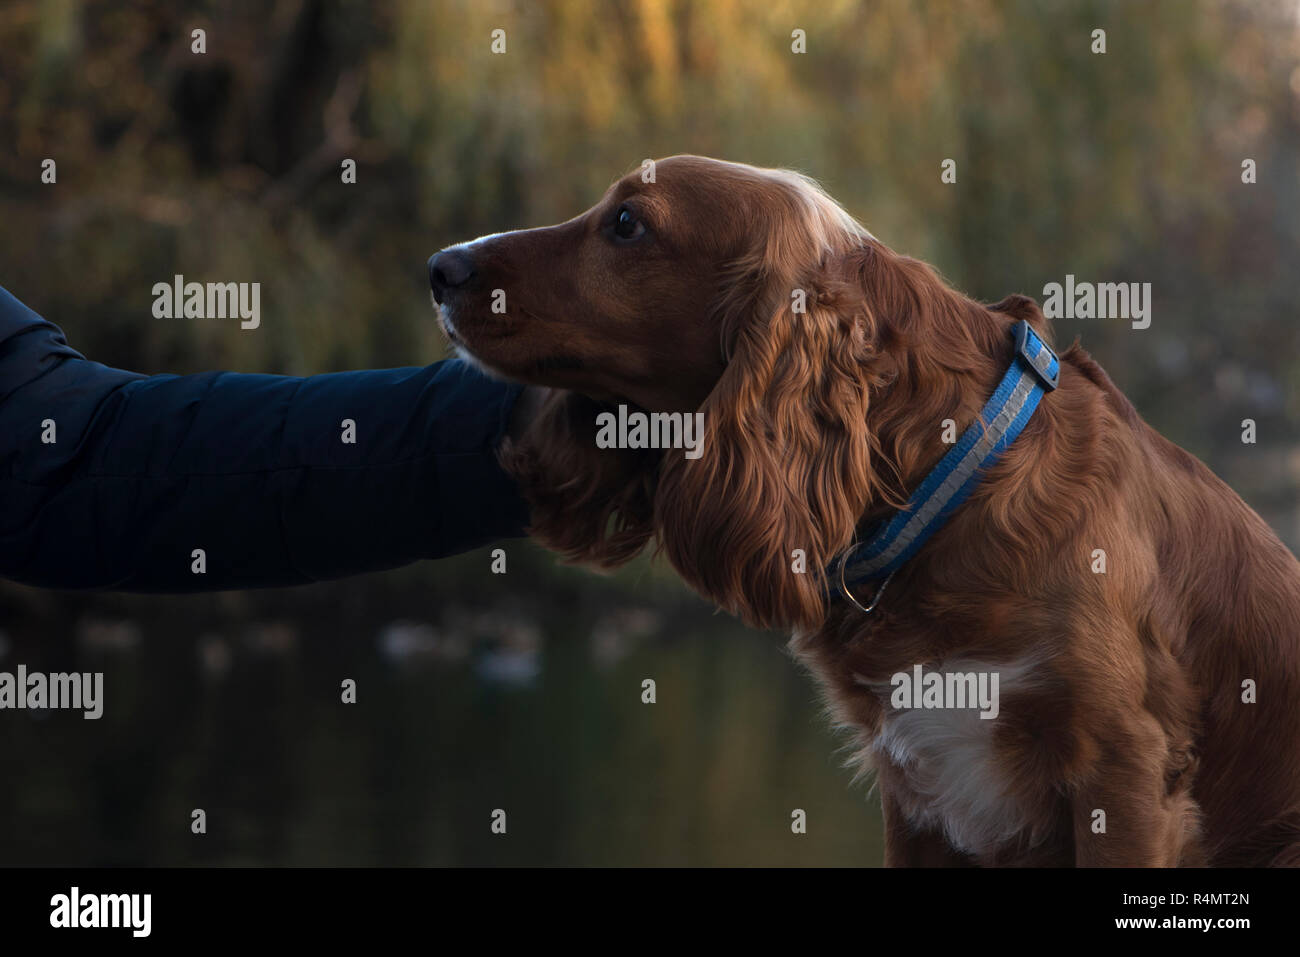 dog breed Cocker Spaniel faithfully looks when her caress, sitting on a bench, a Board on the background of the lake, the trees, - Stock Image